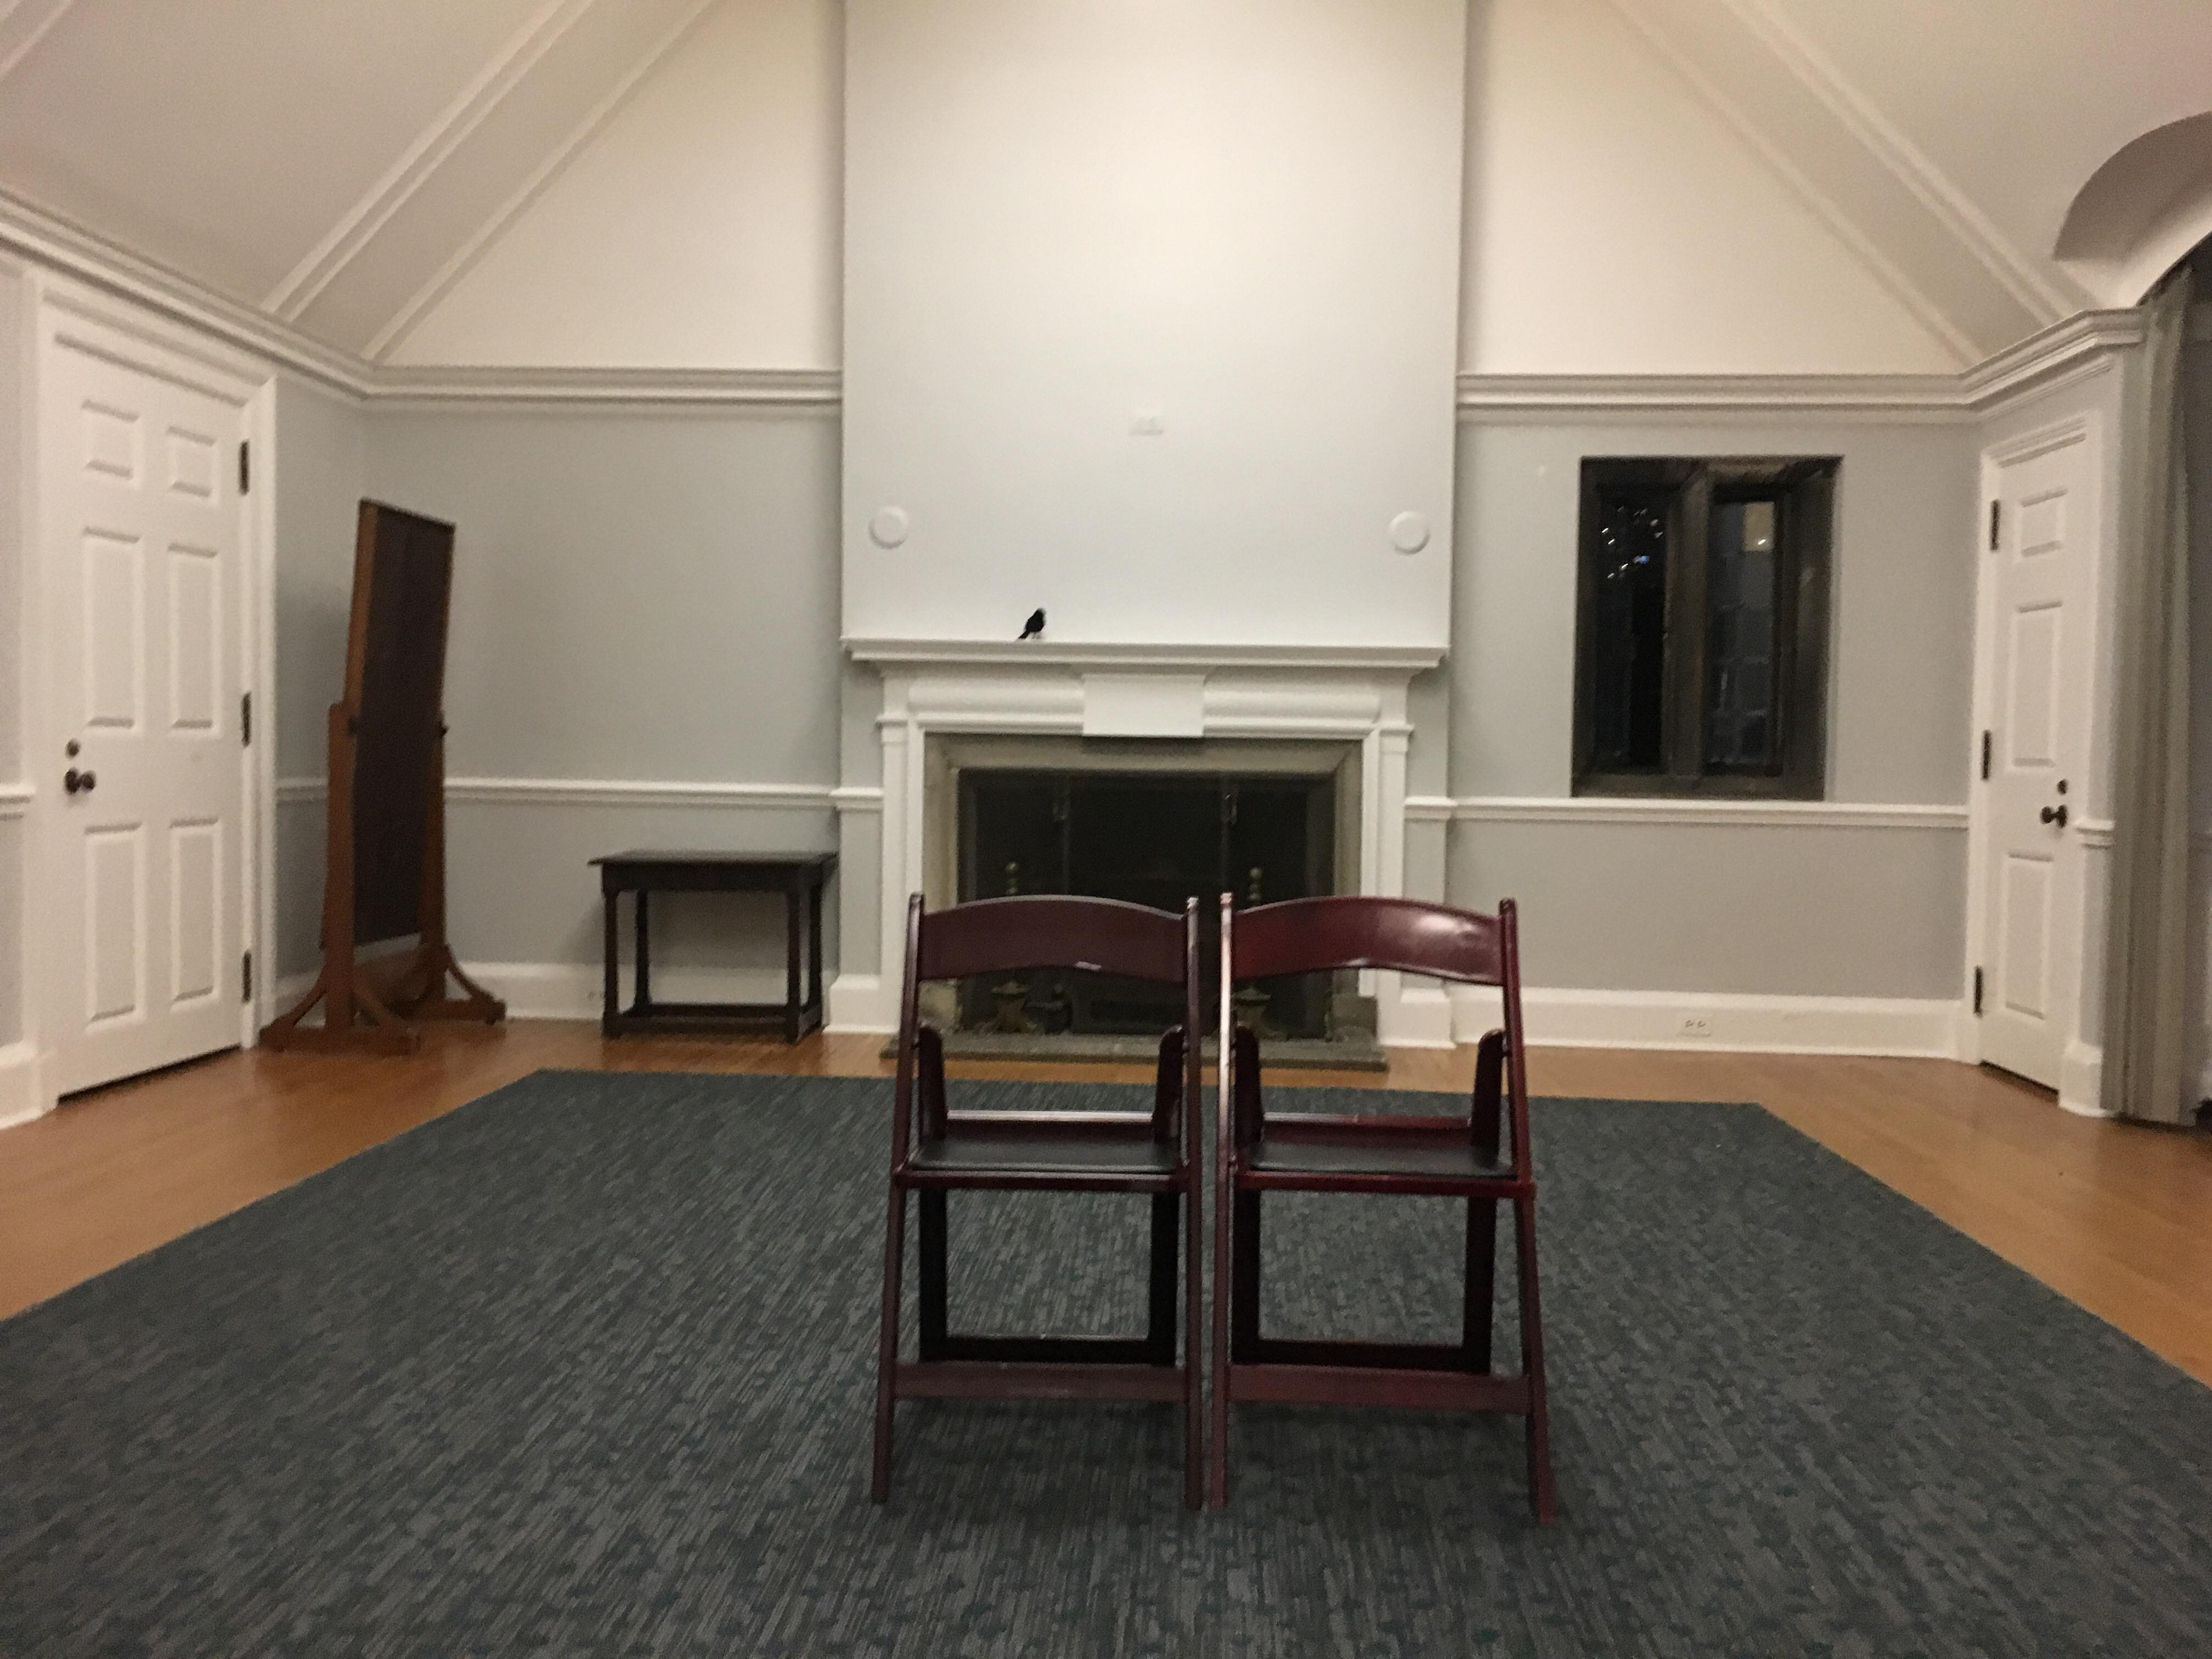 Picture of a room with two brown chairs sitting side by side